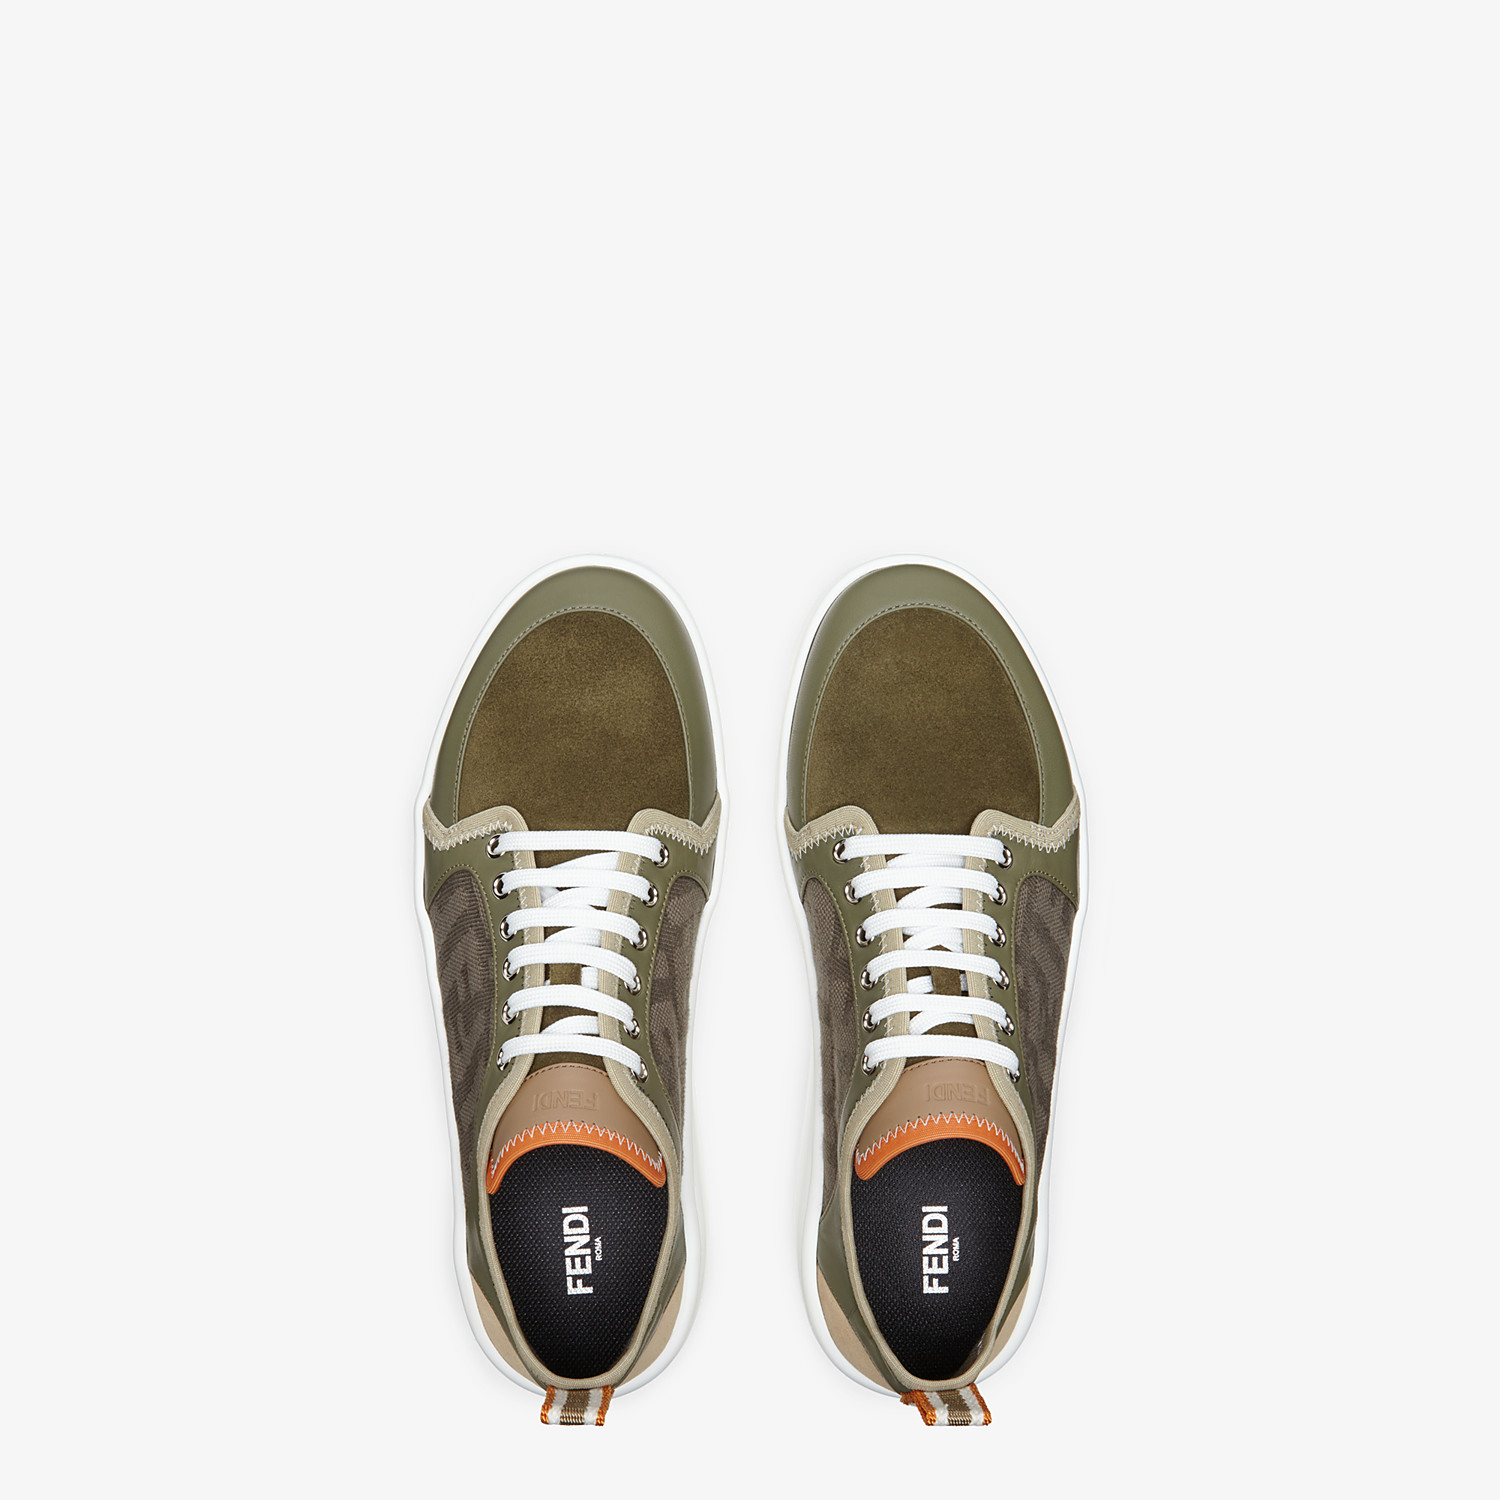 FENDI SNEAKERS - Multicolour leather and suede low-tops - view 4 detail